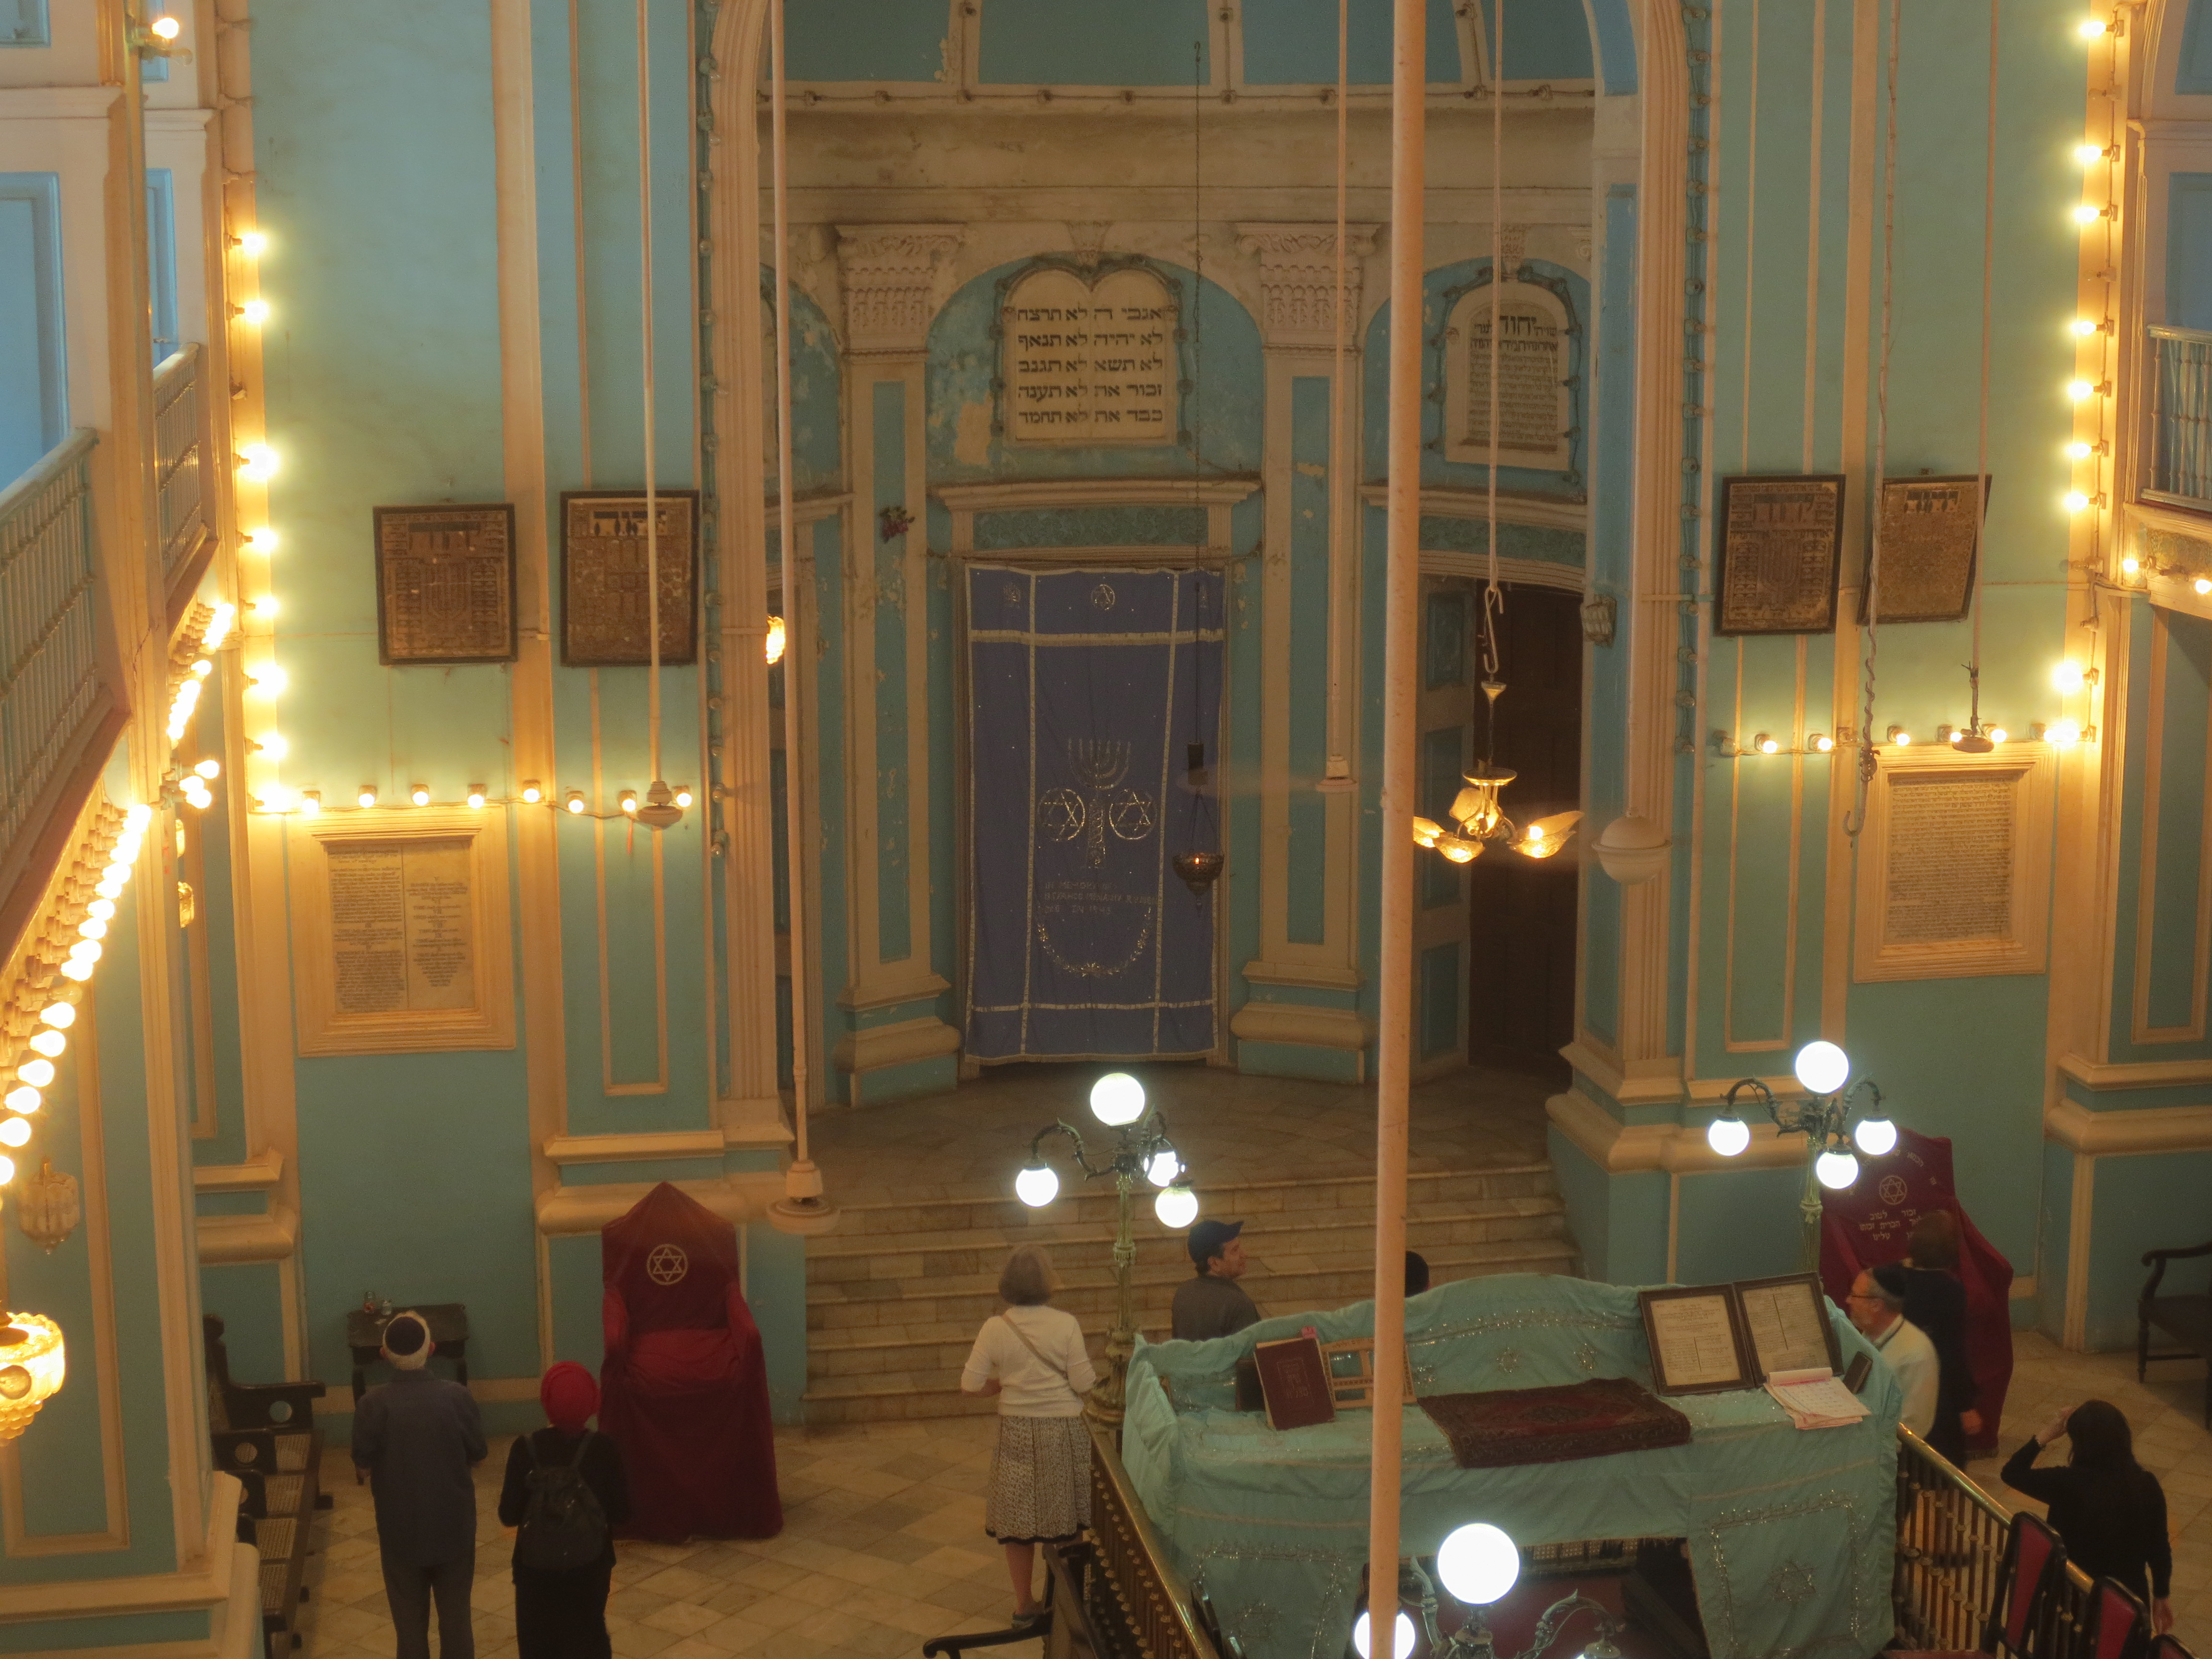 from the balcony of the Magen David Shul